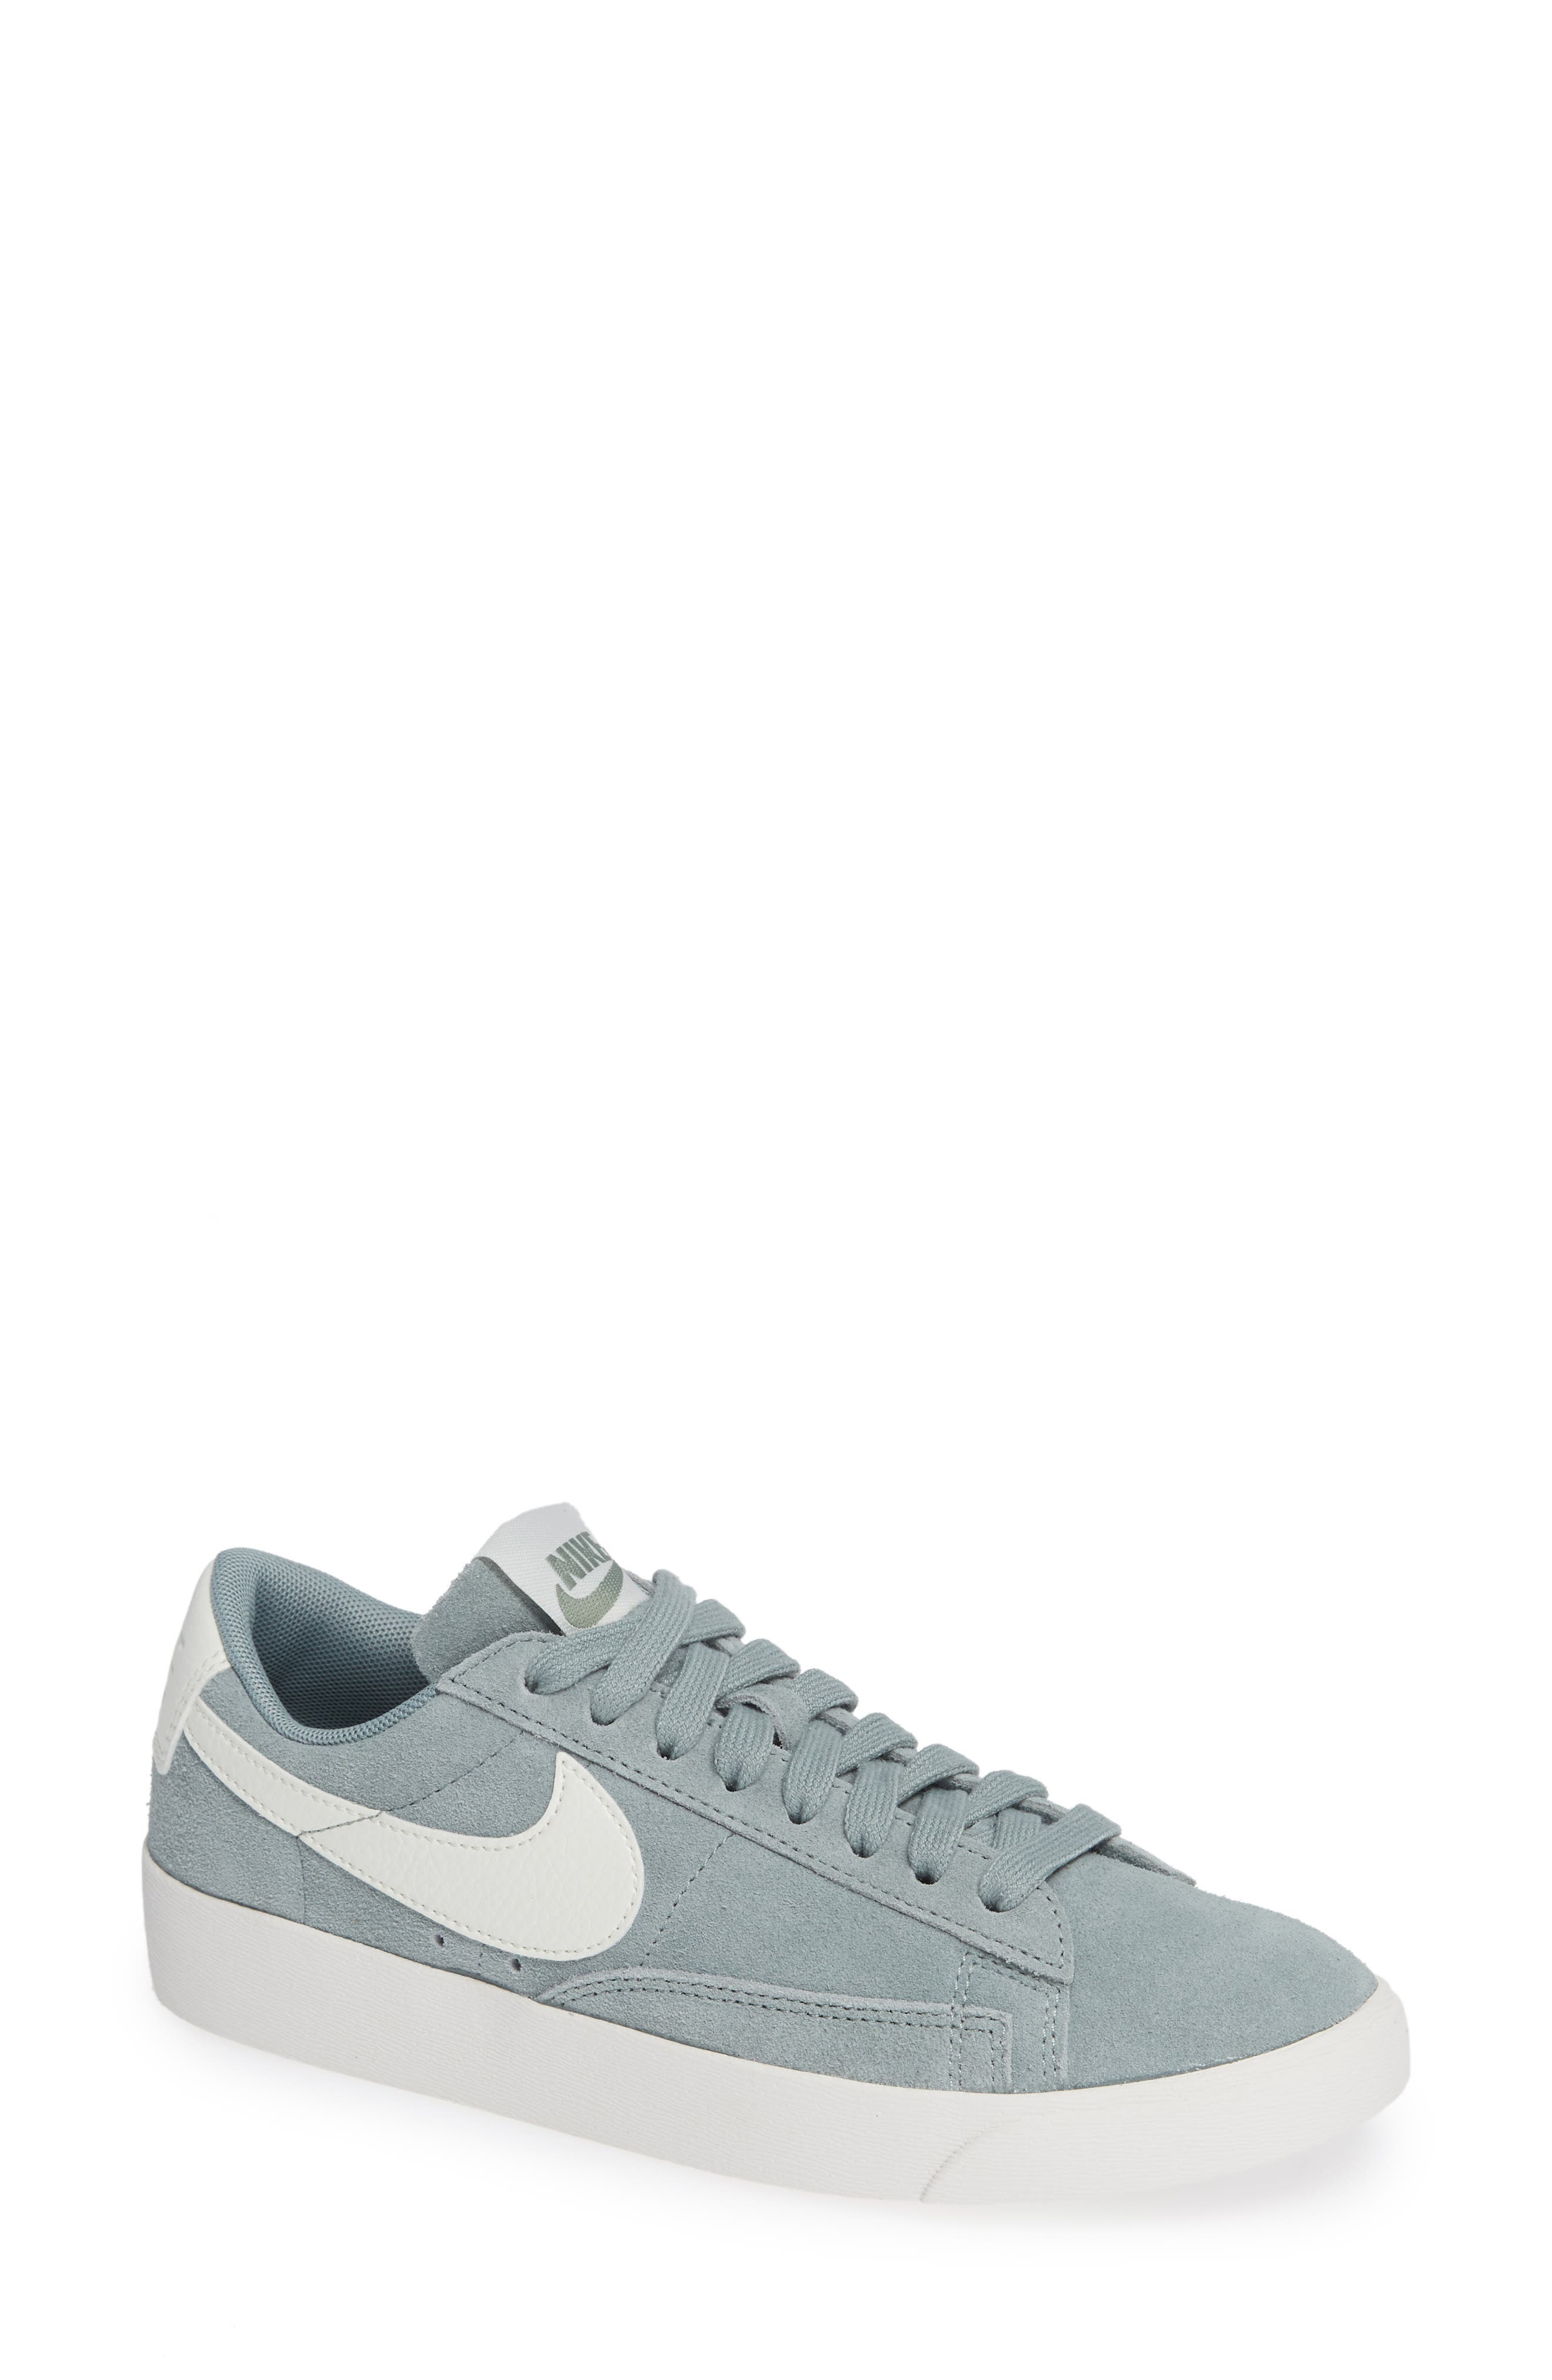 Blazer Low Top Sneaker Sd in Mica Green/ Sail